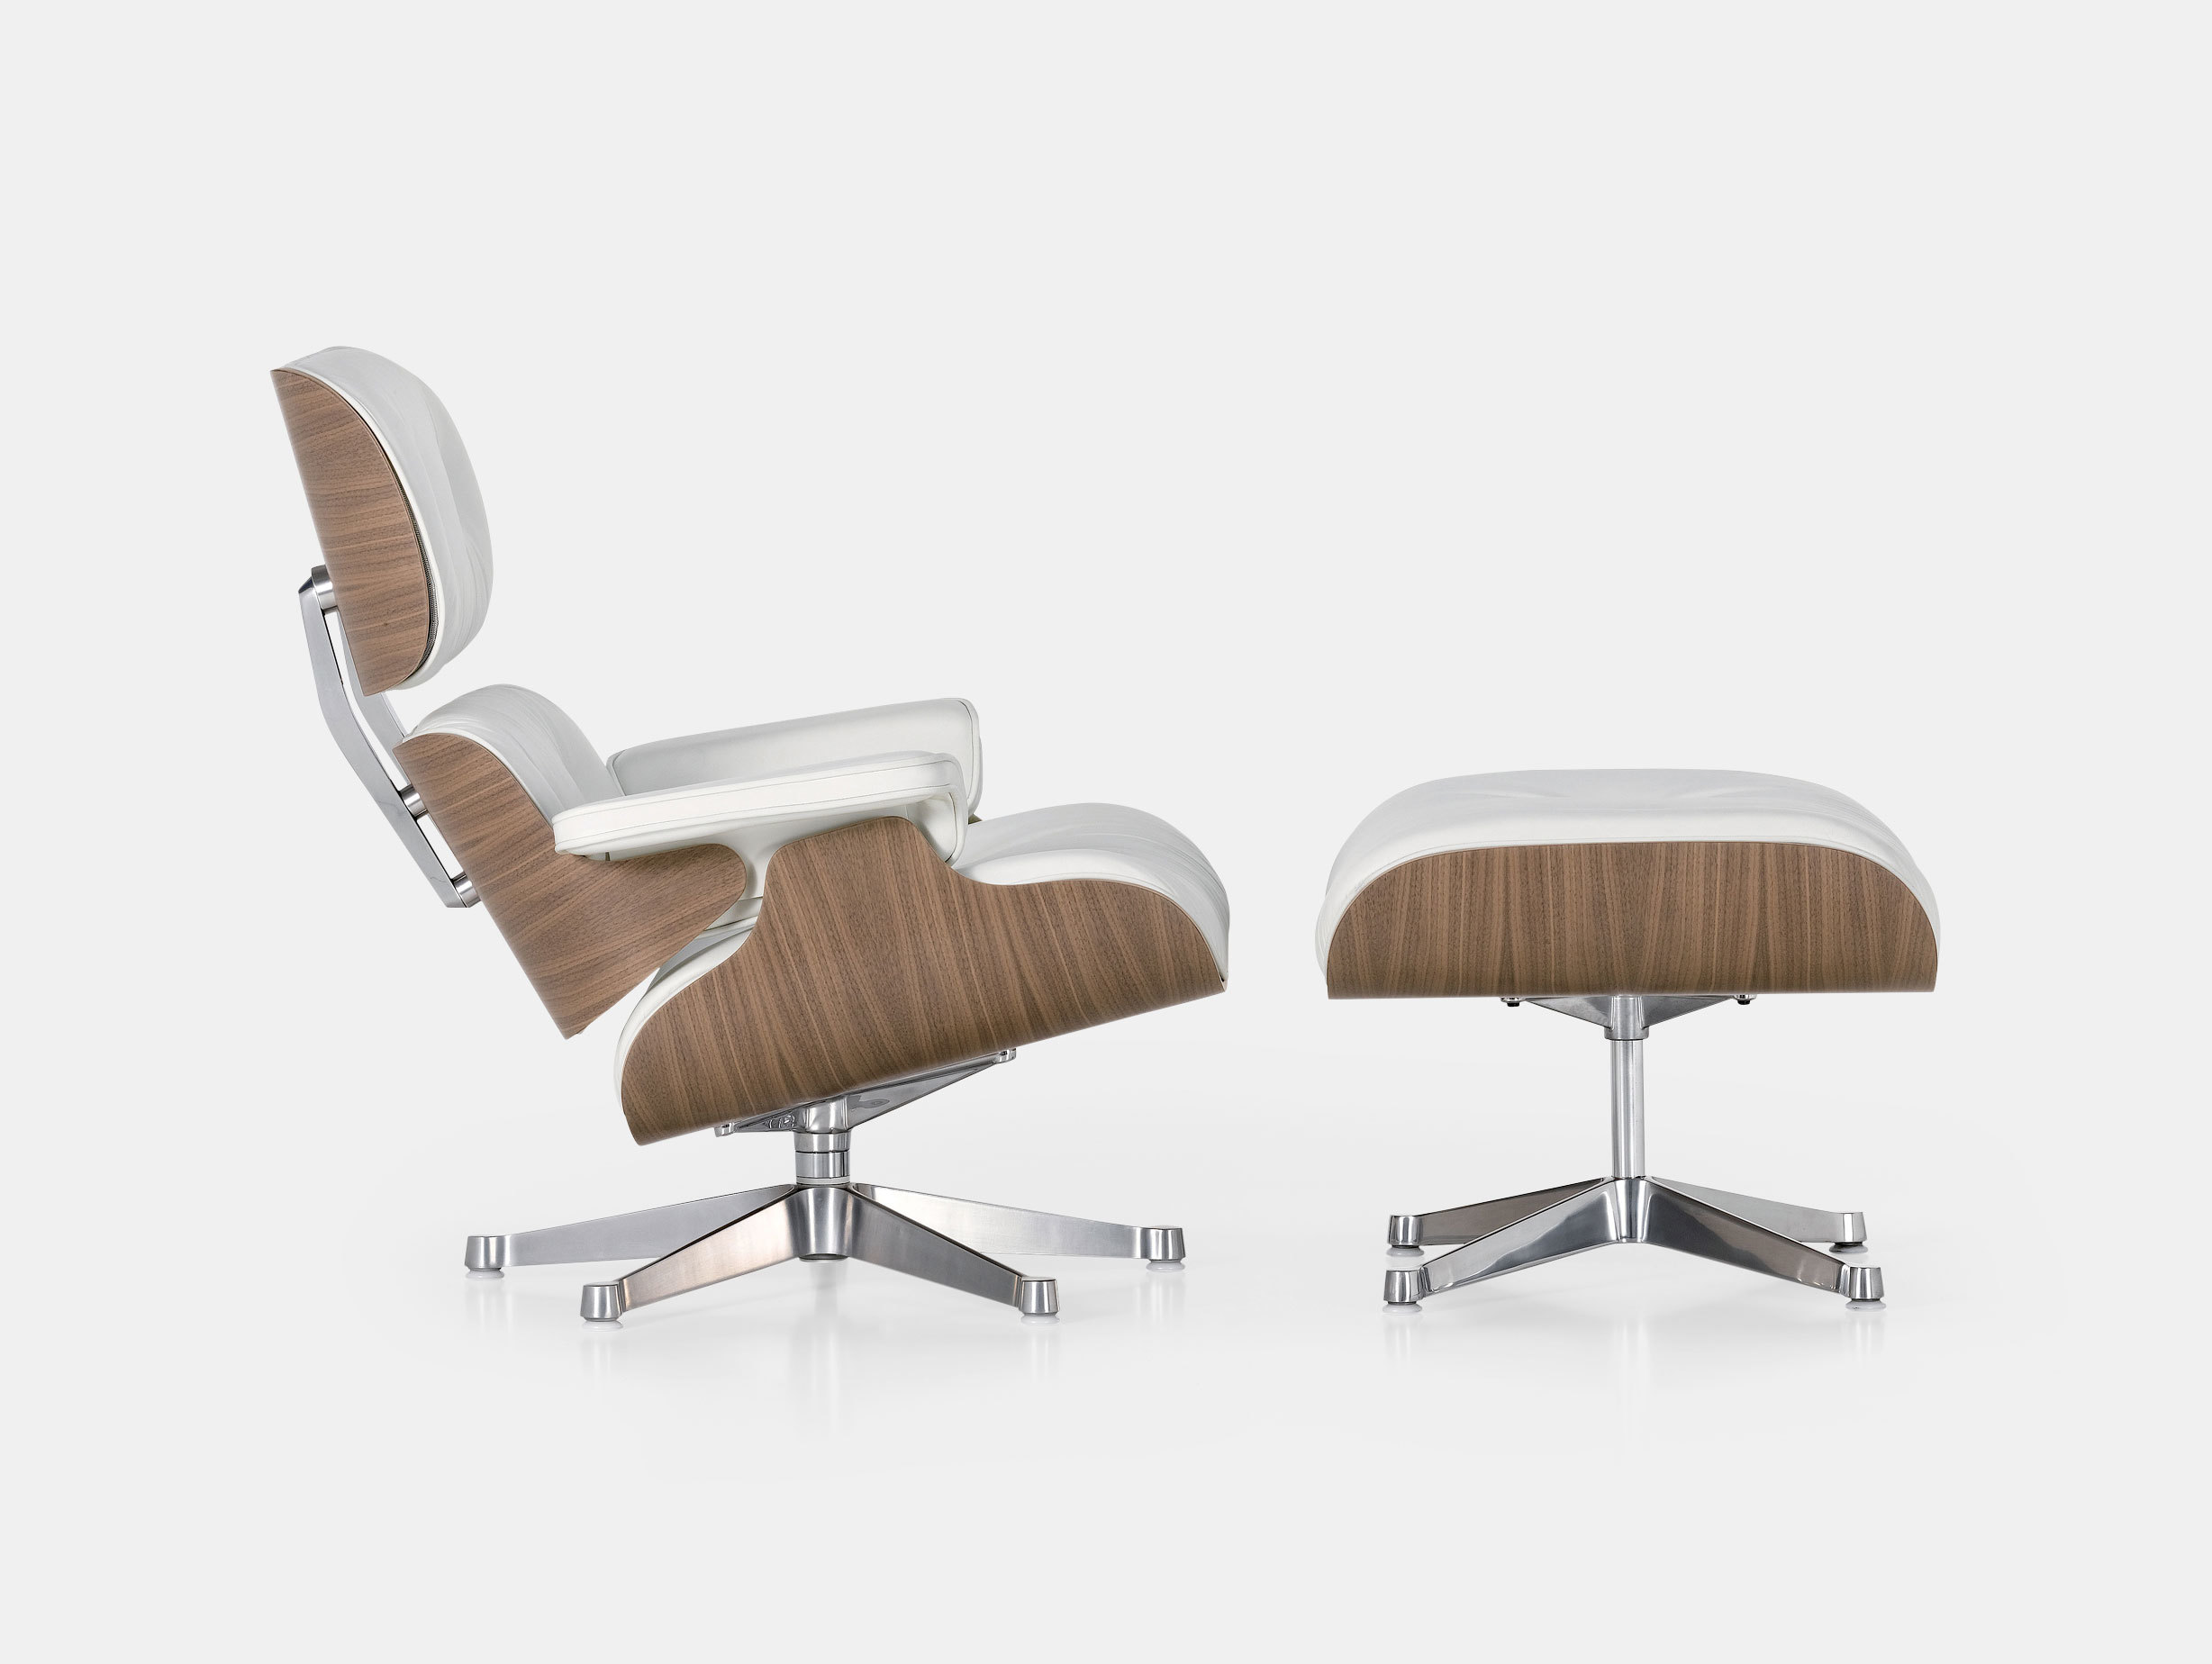 Eames Lounge Chair & Ottoman image 3